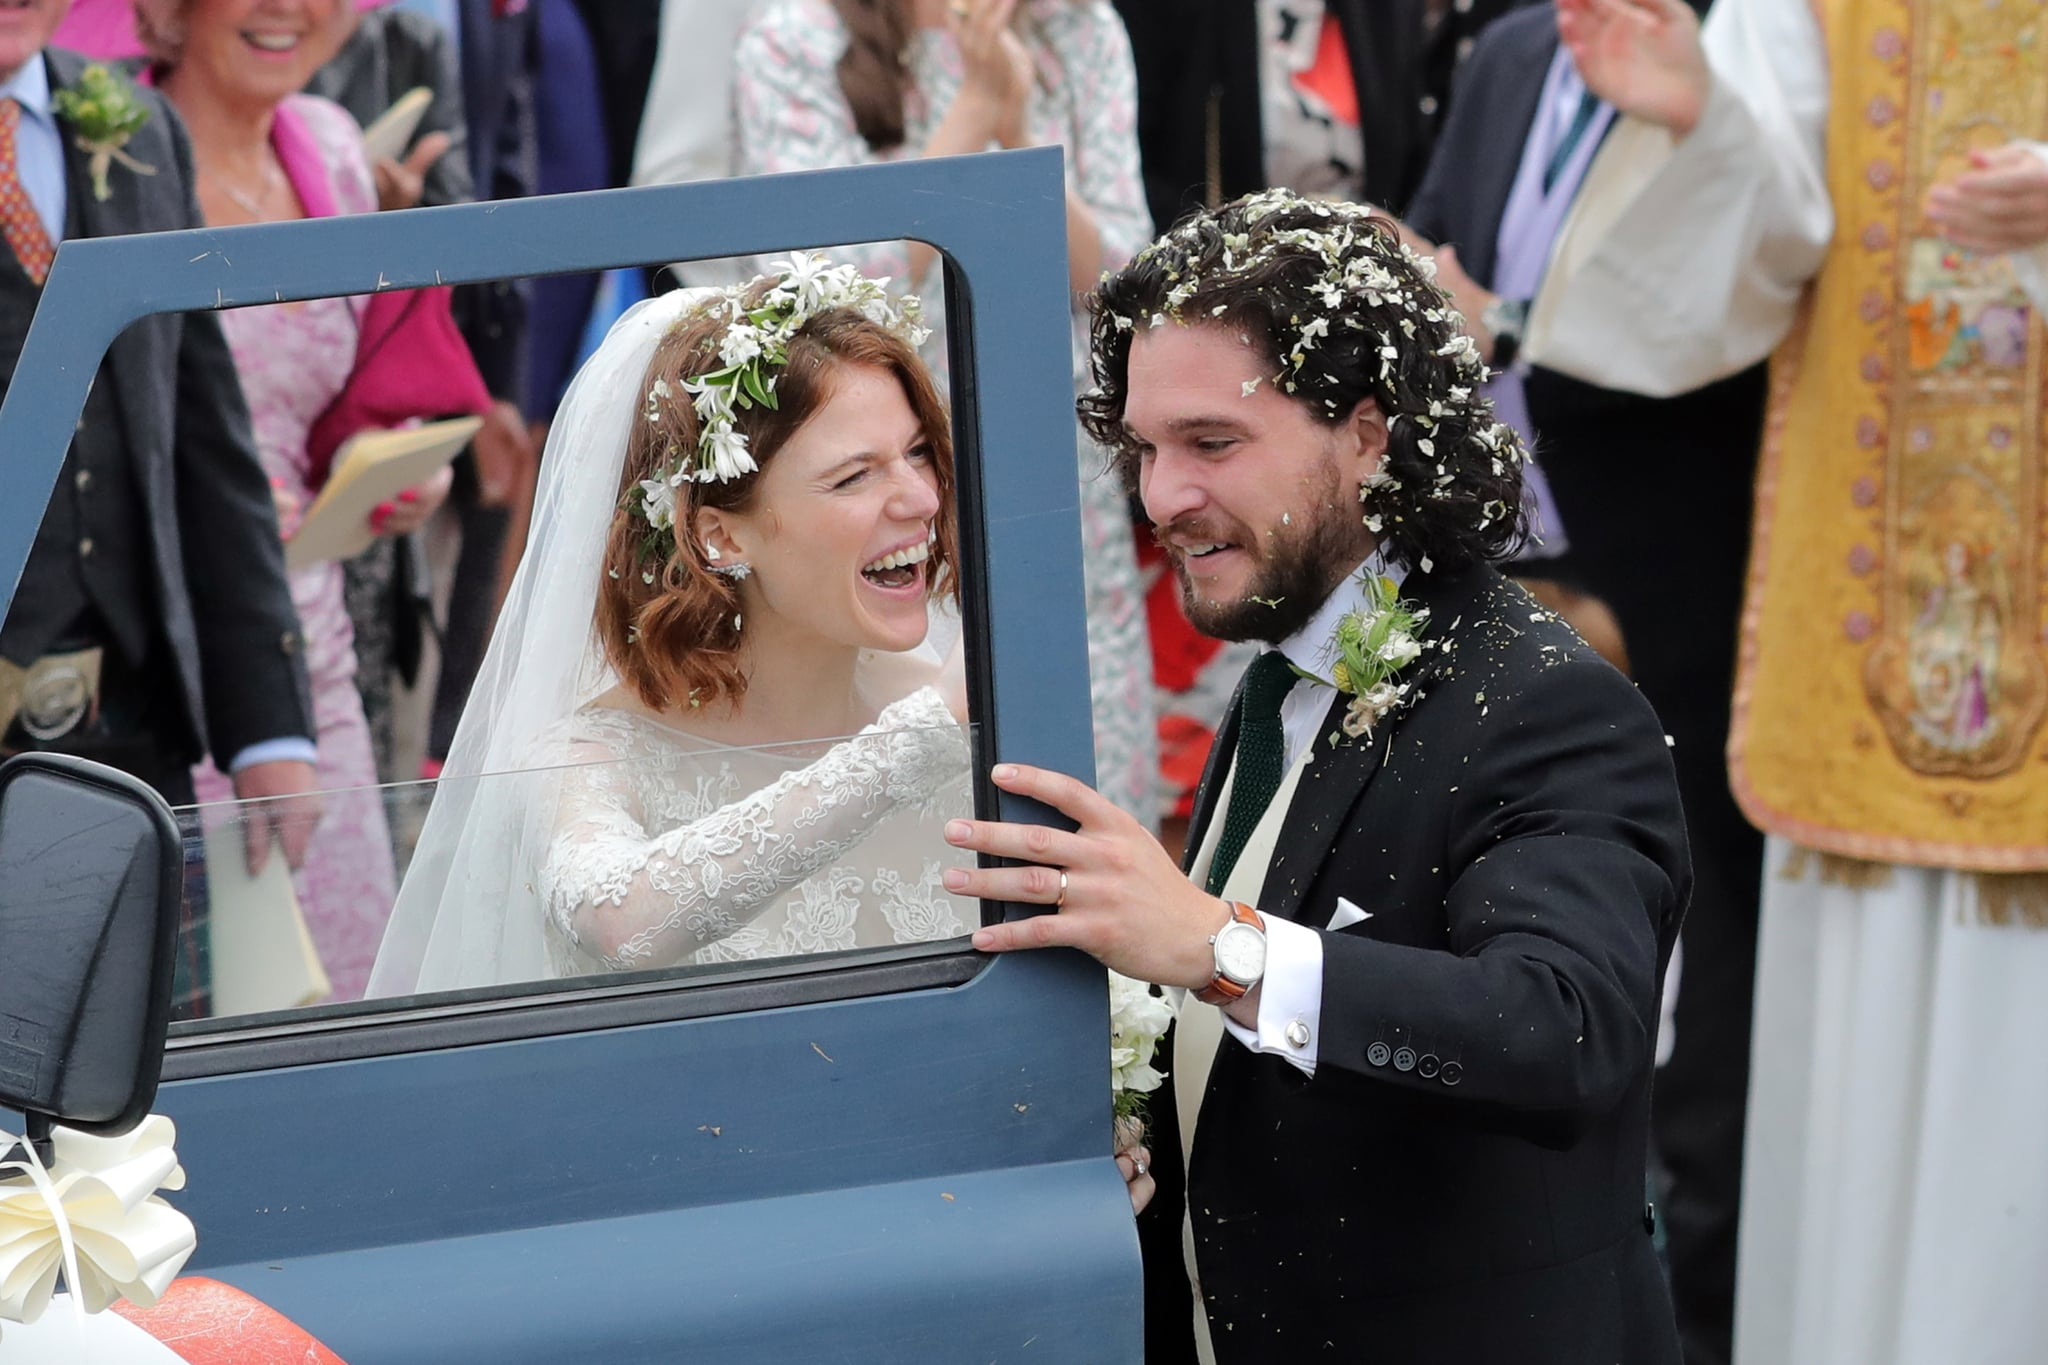 ABERDEEN, SCOTLAND - JUNE 23:  Kit Harrington and Rose Leslie departing Rayne Church in Kirkton on Rayne after their wedding on June 23, 2018 in Aberdeen, Scotland.  (Photo by Mark R. Milan/GC Images)